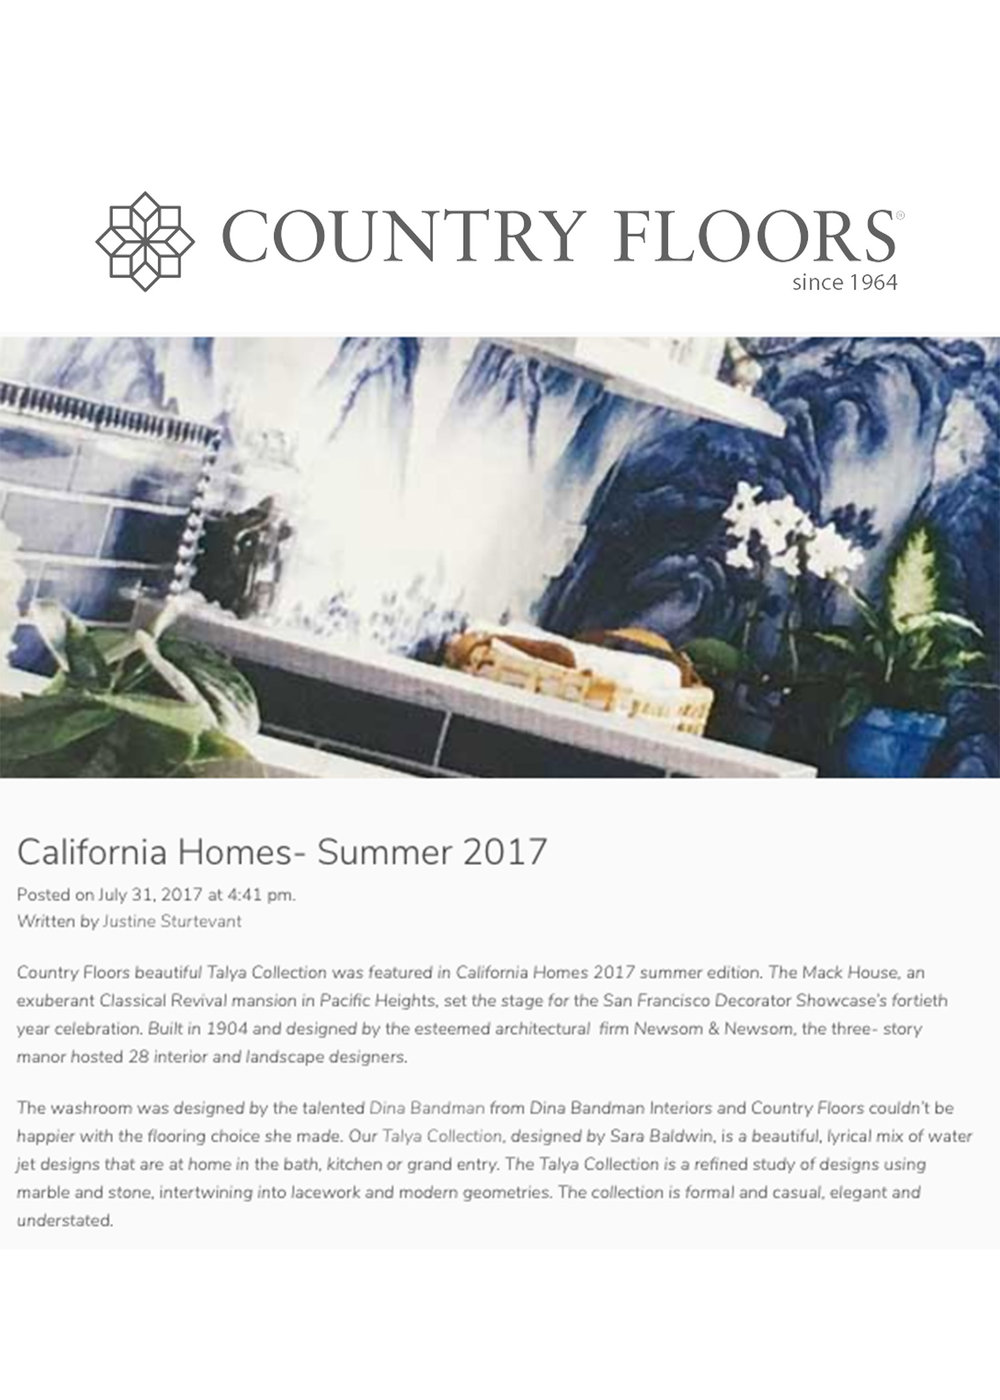 COUNTRY FLOORS- SUMMER 2017